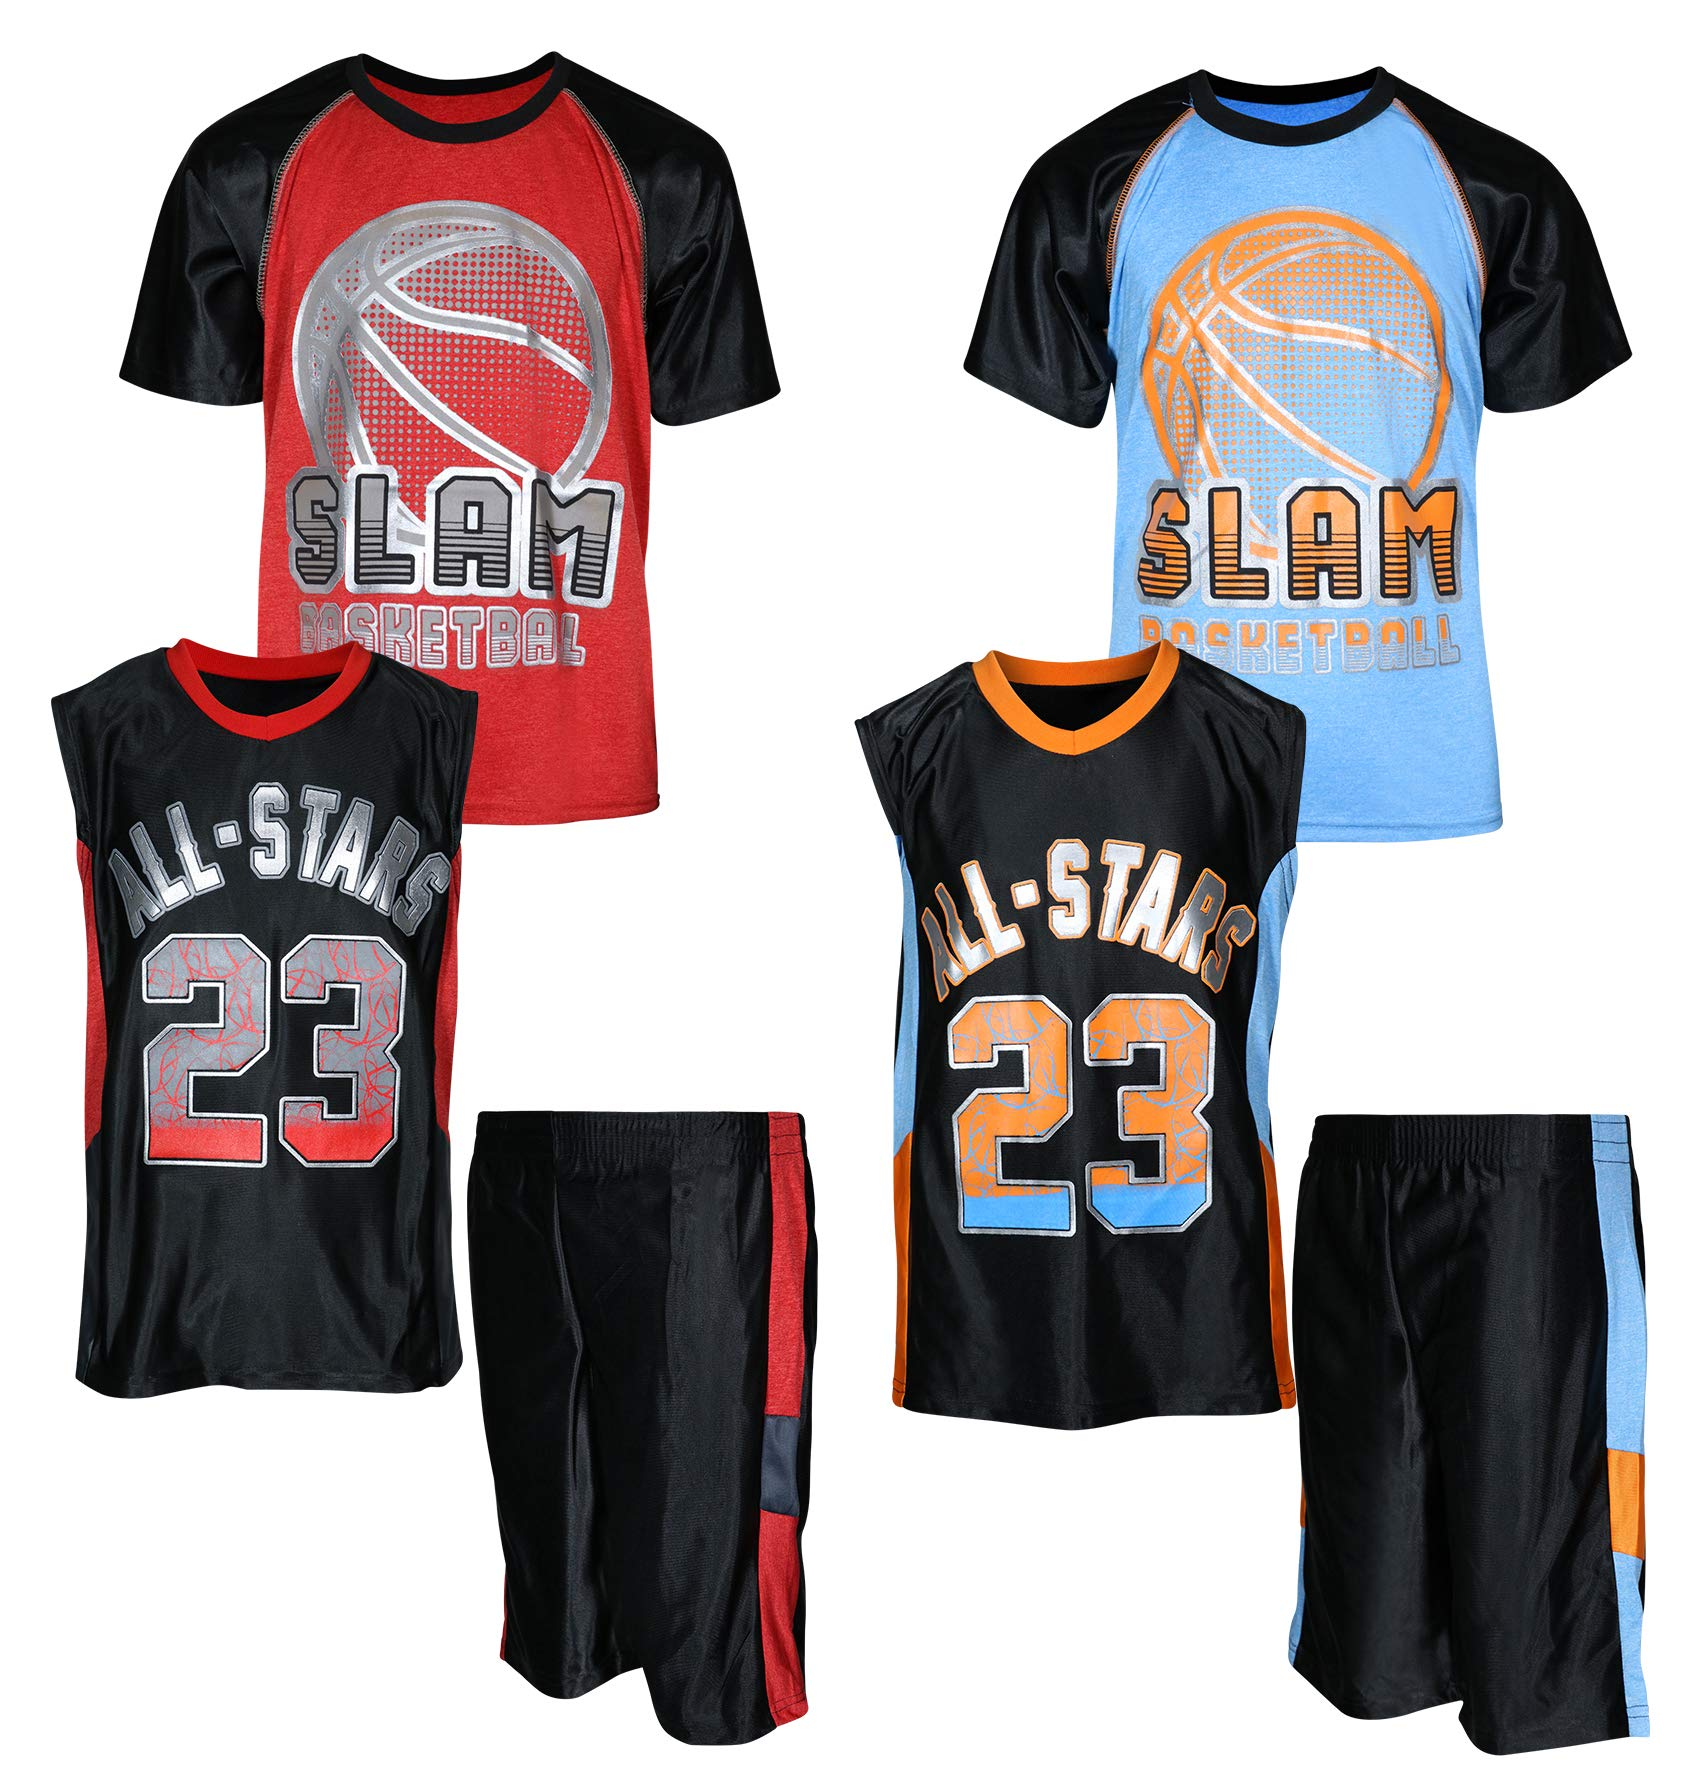 Mad Game Boys' 6-Piece Performance Basketball Shirt and Short Set (2 Full Sets), All Stars, Size 4T'